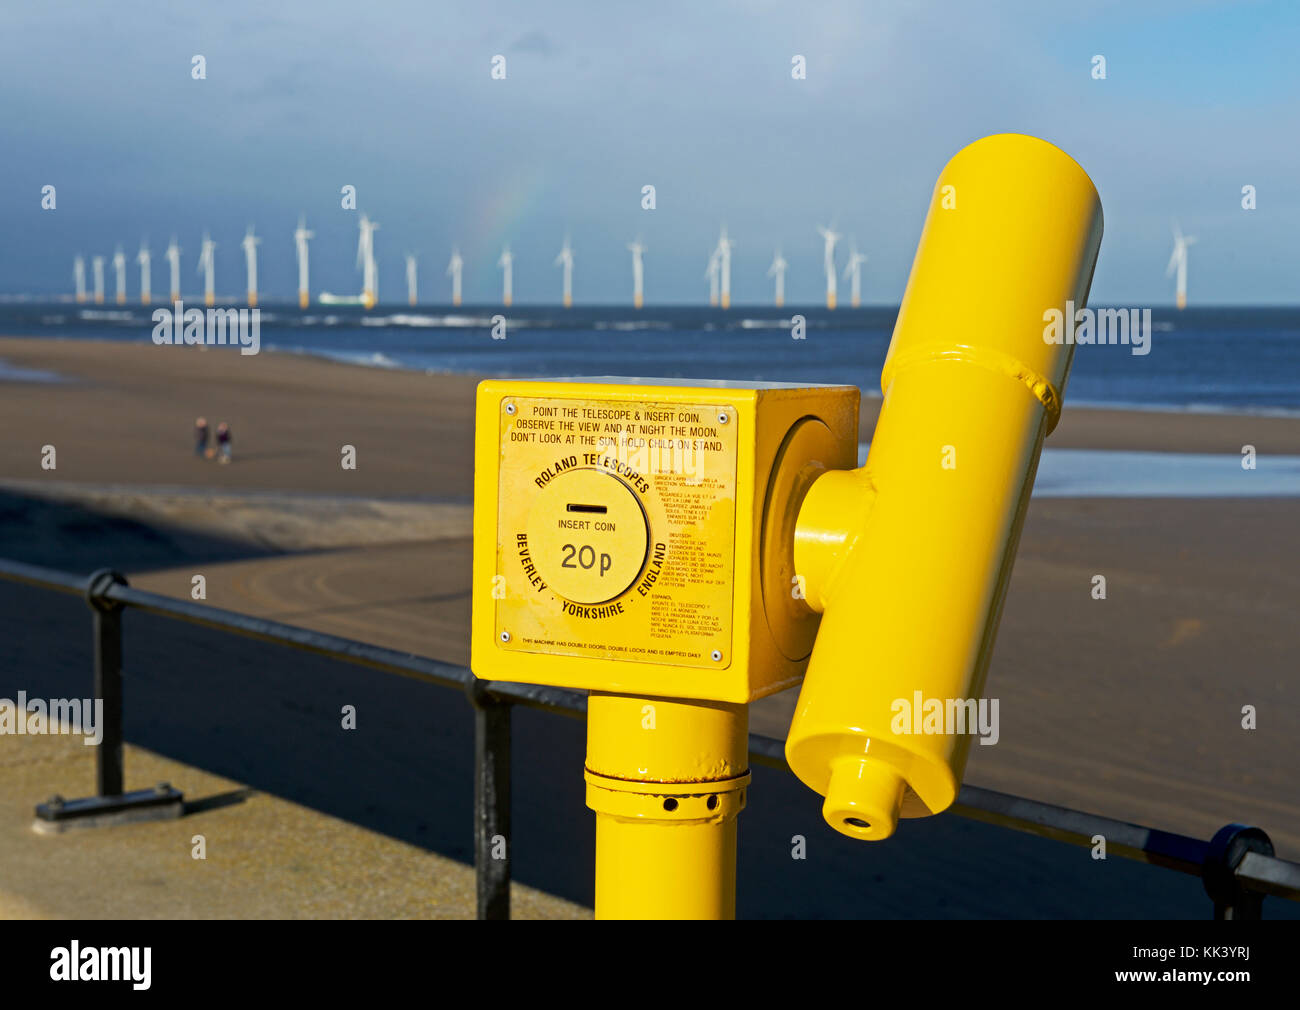 Offshore windfarm and viewing scope at Redcar, North Yorkshire, England UK - Stock Image